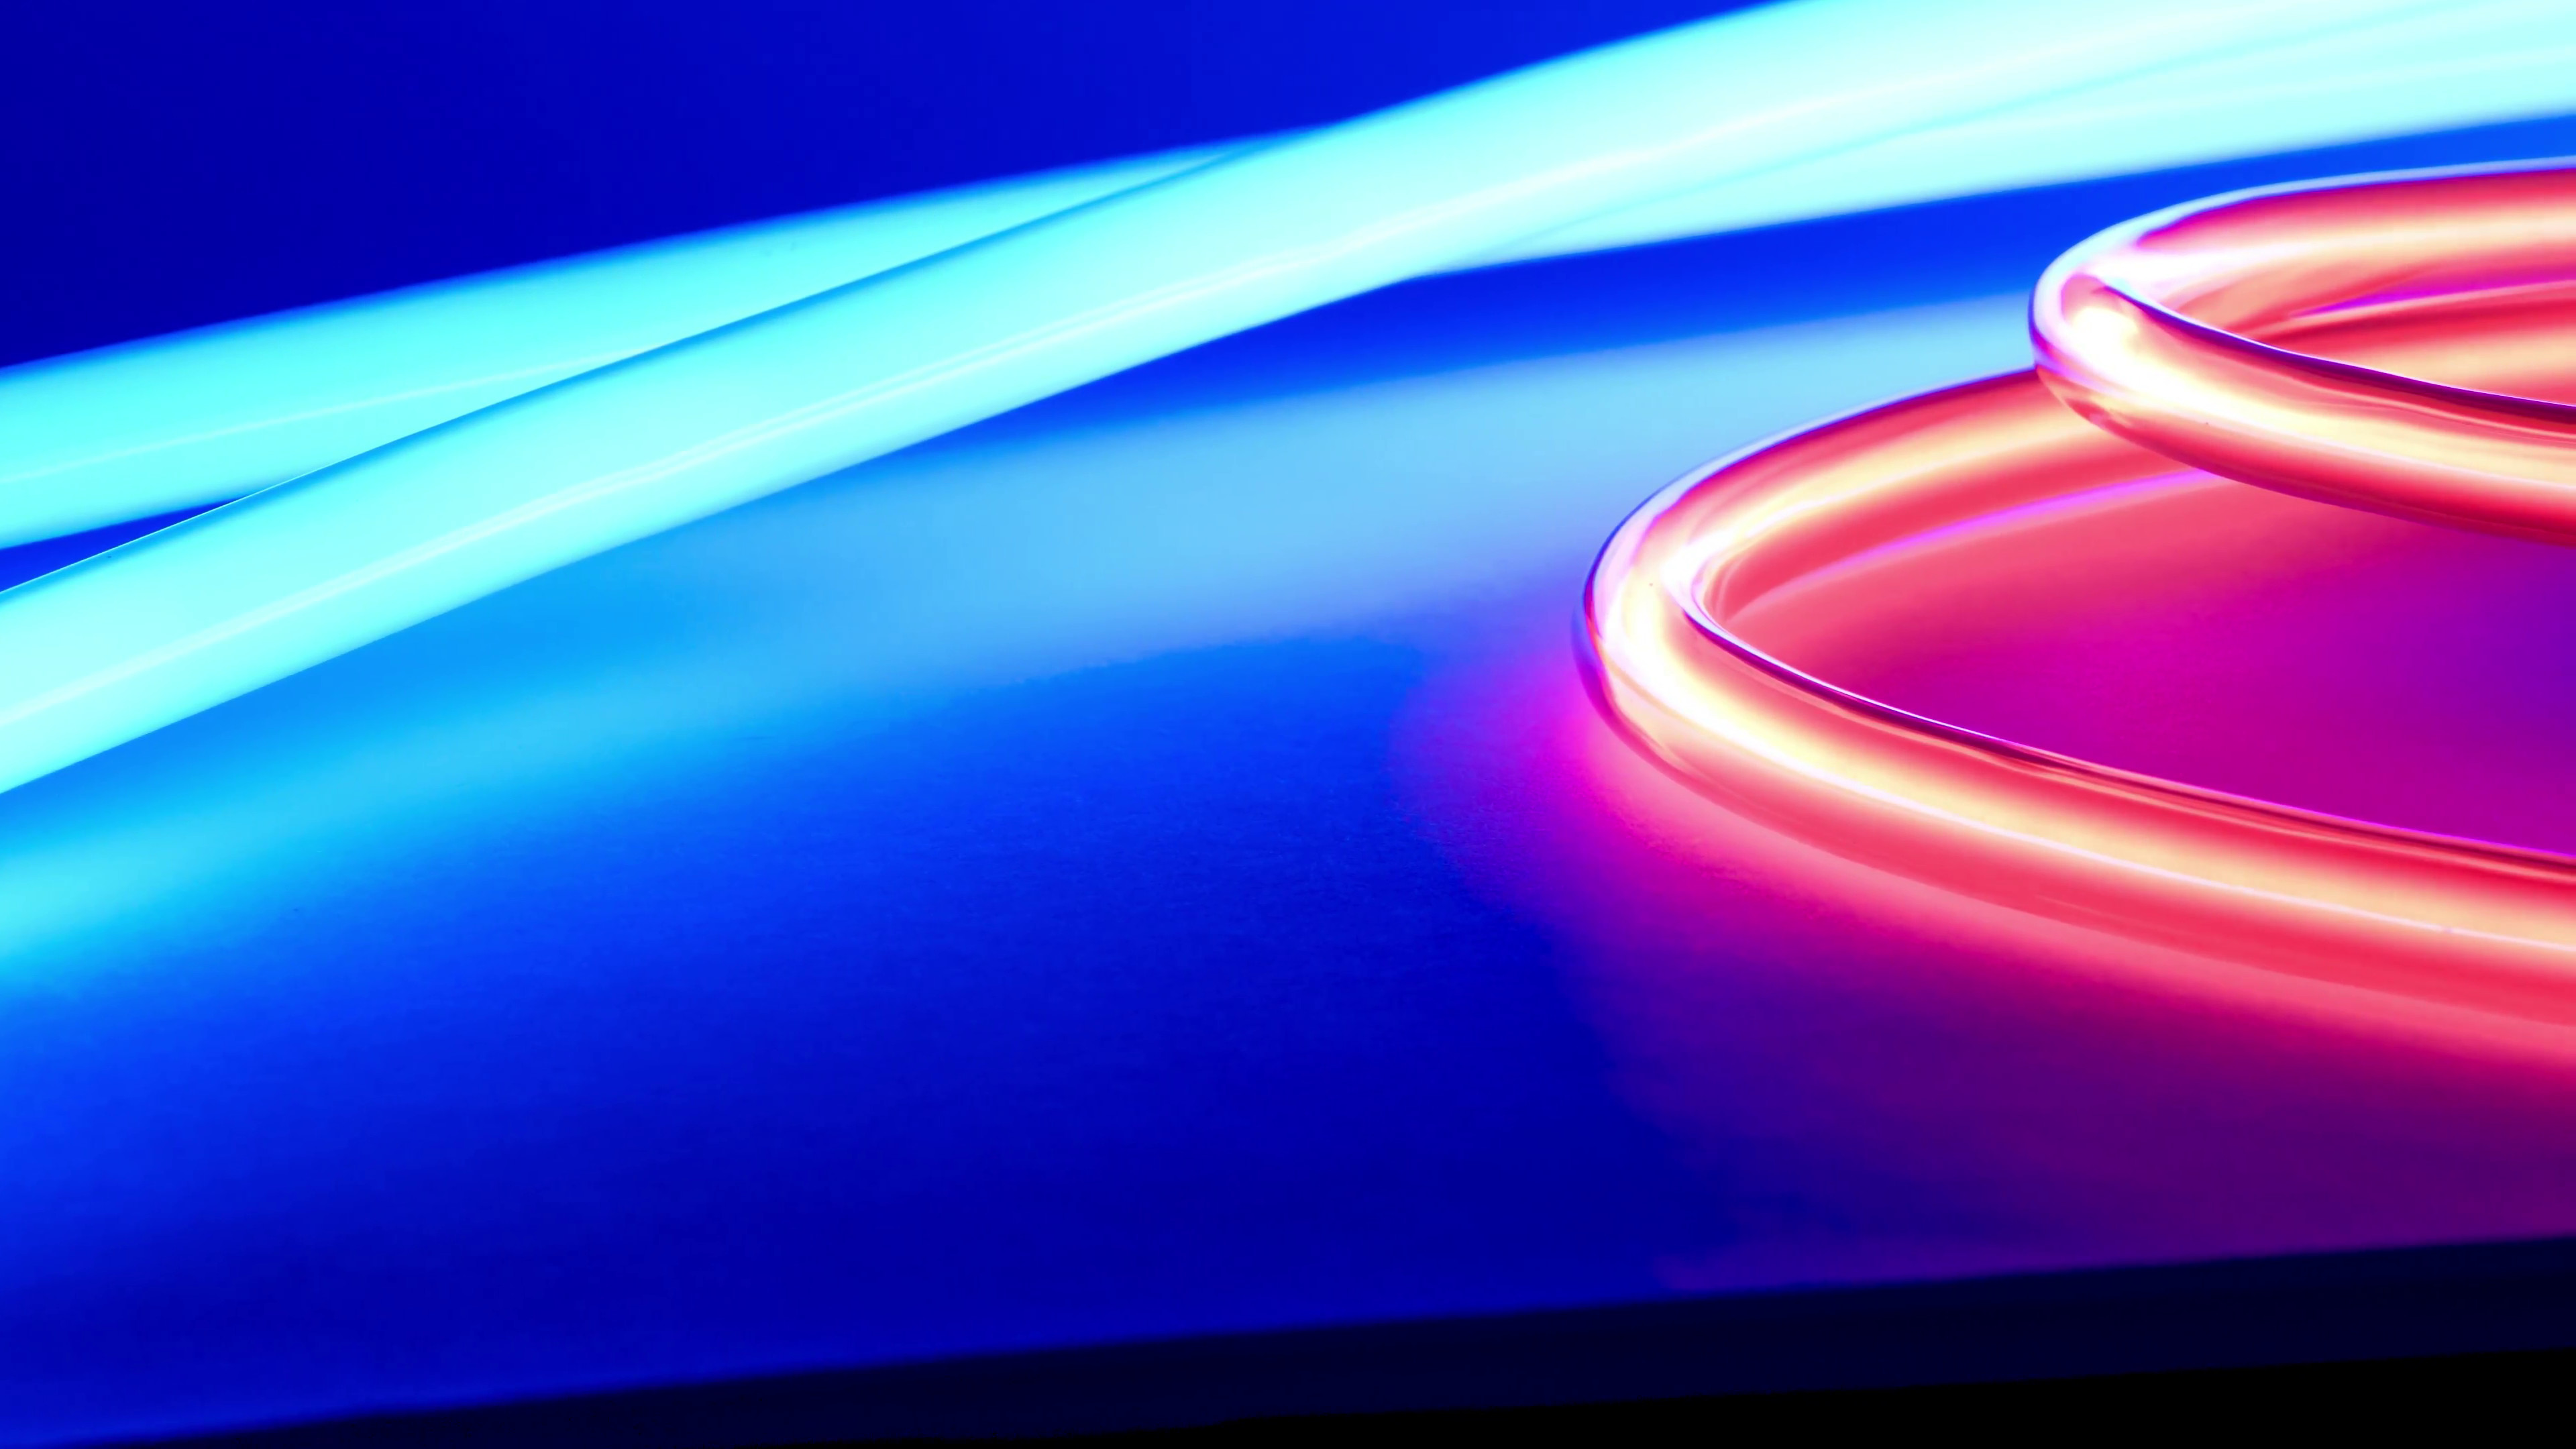 Subscription Library Abstract neon light motion background